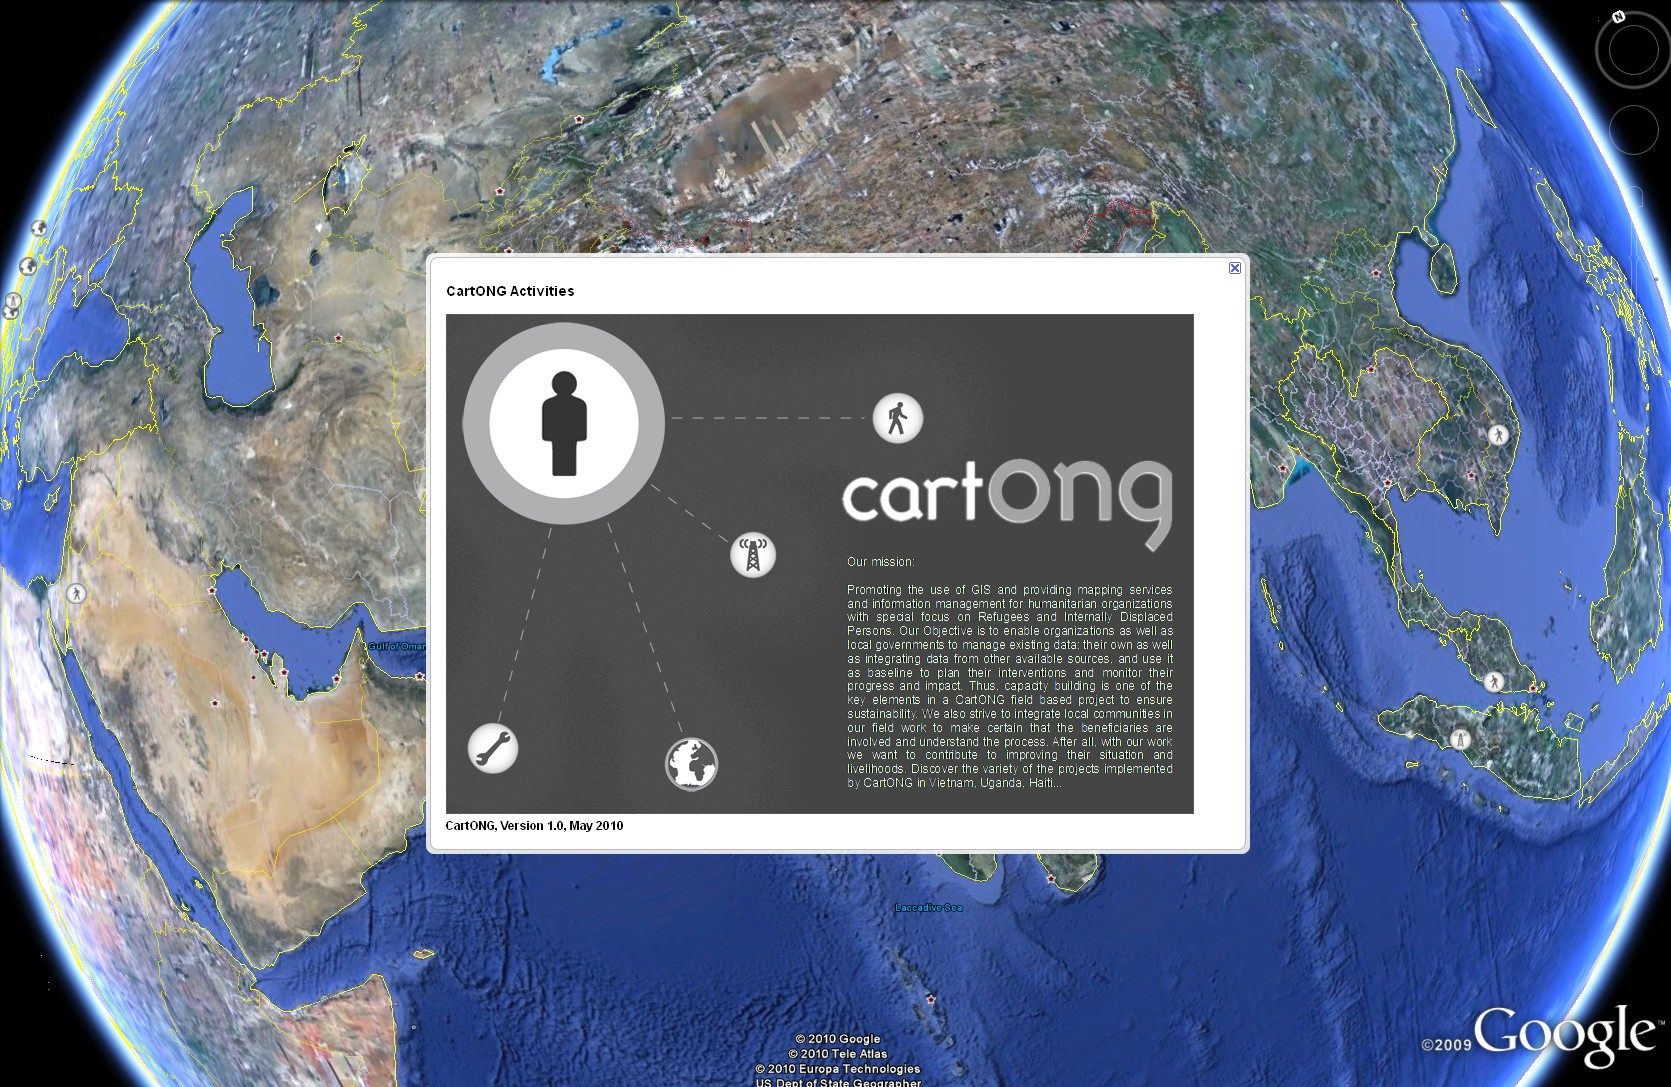 KMl projects CartONG